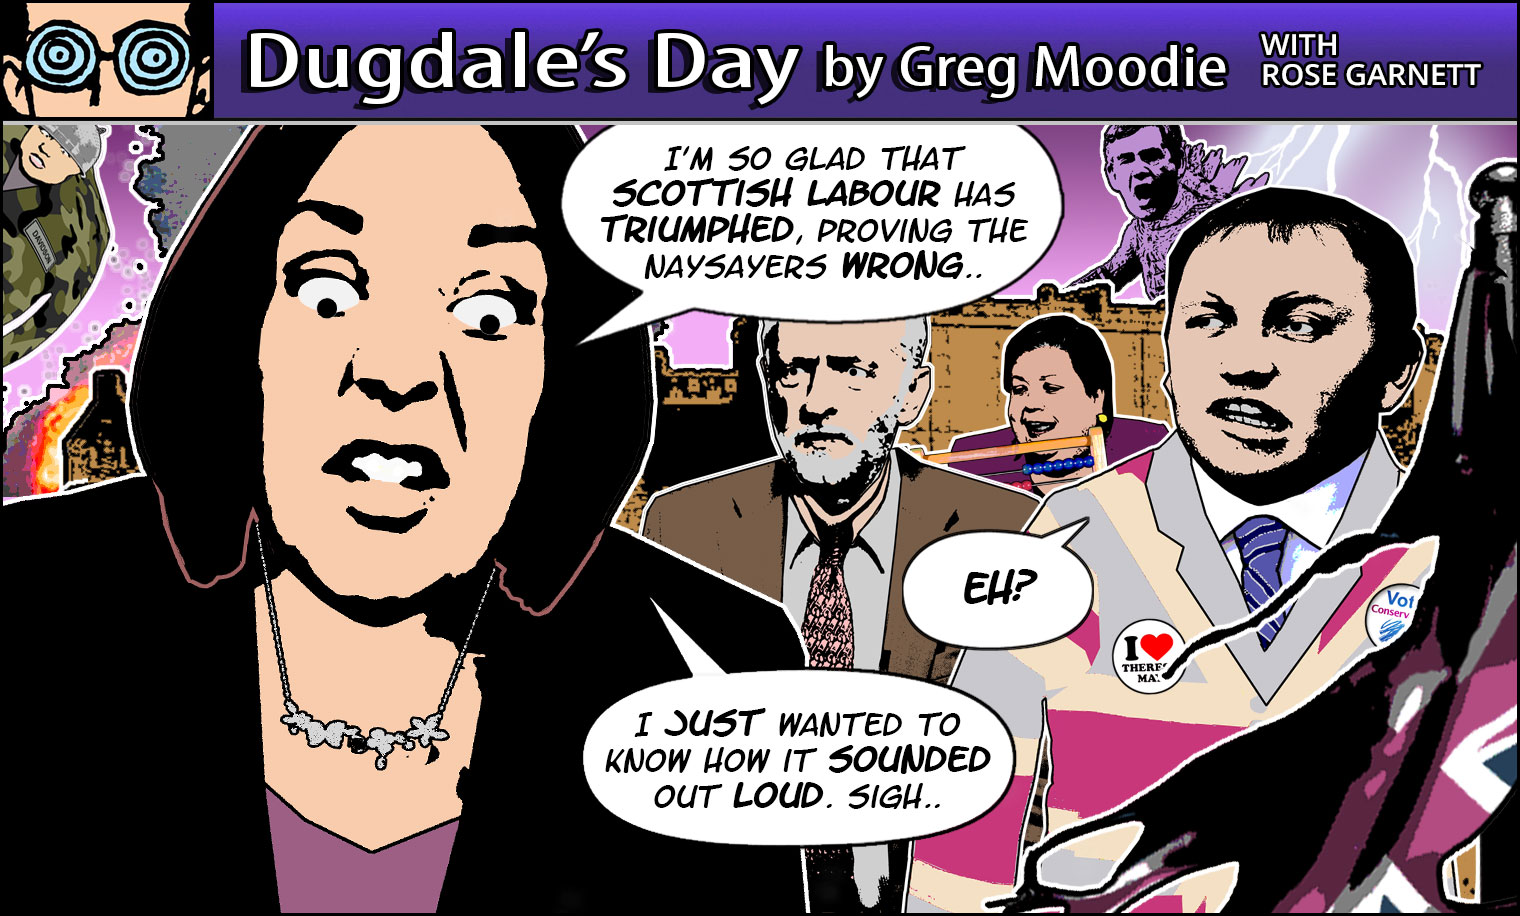 Dugdale's Day